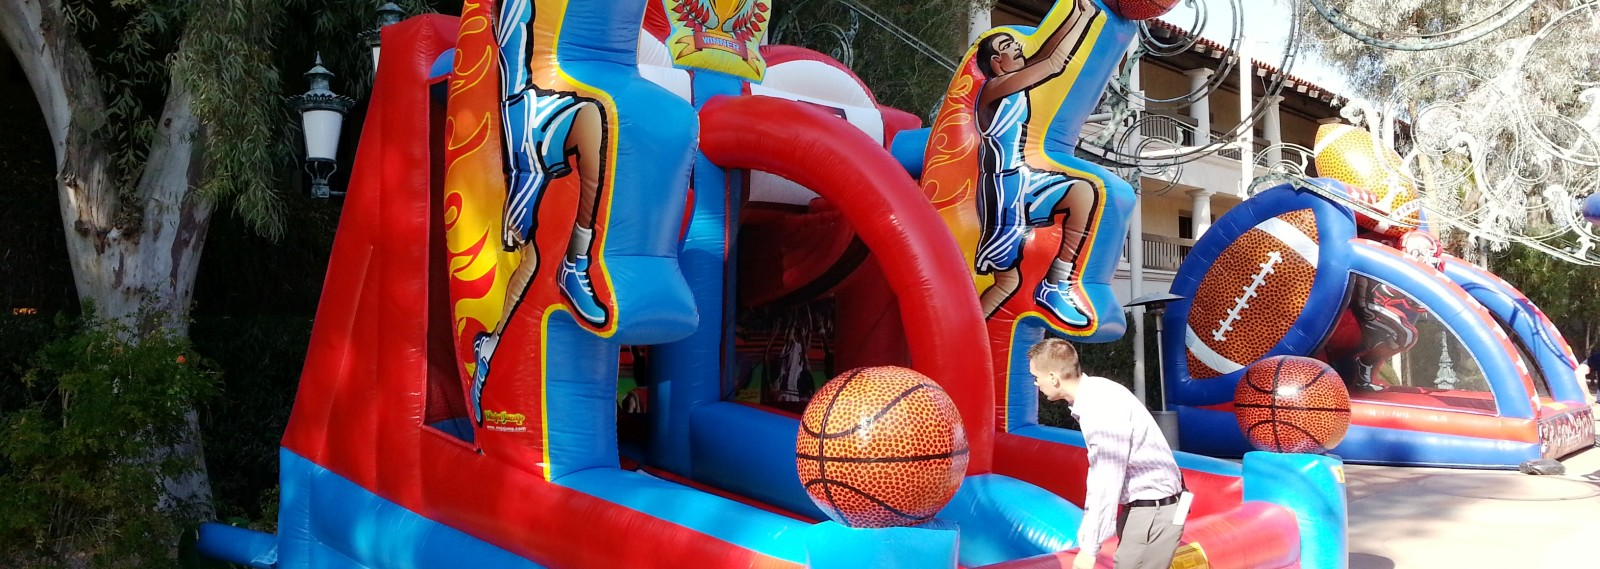 Inflatable Basketball Shooting Stars